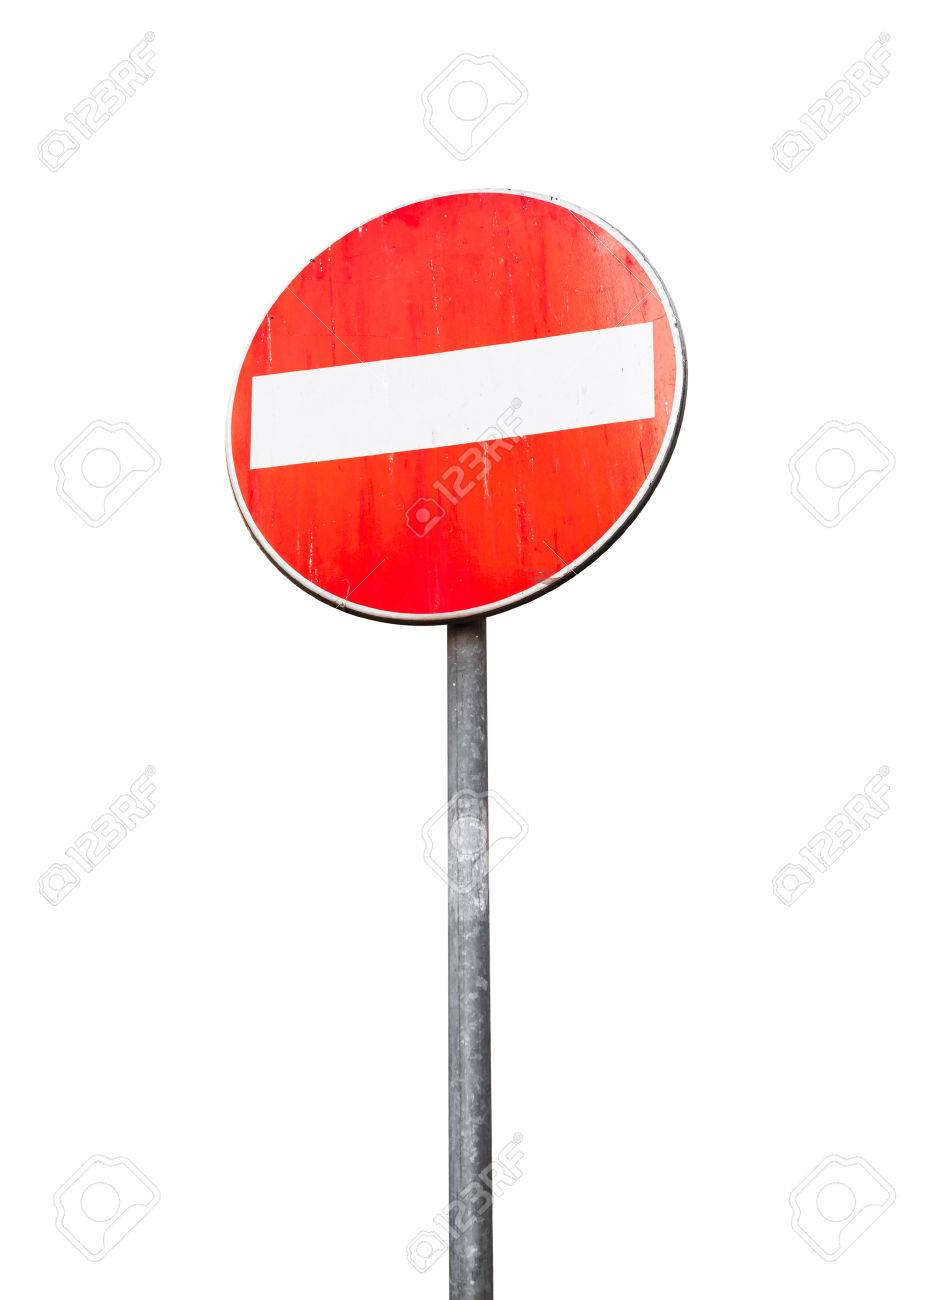 round red sign no entry on metal pole isolated on white banco de